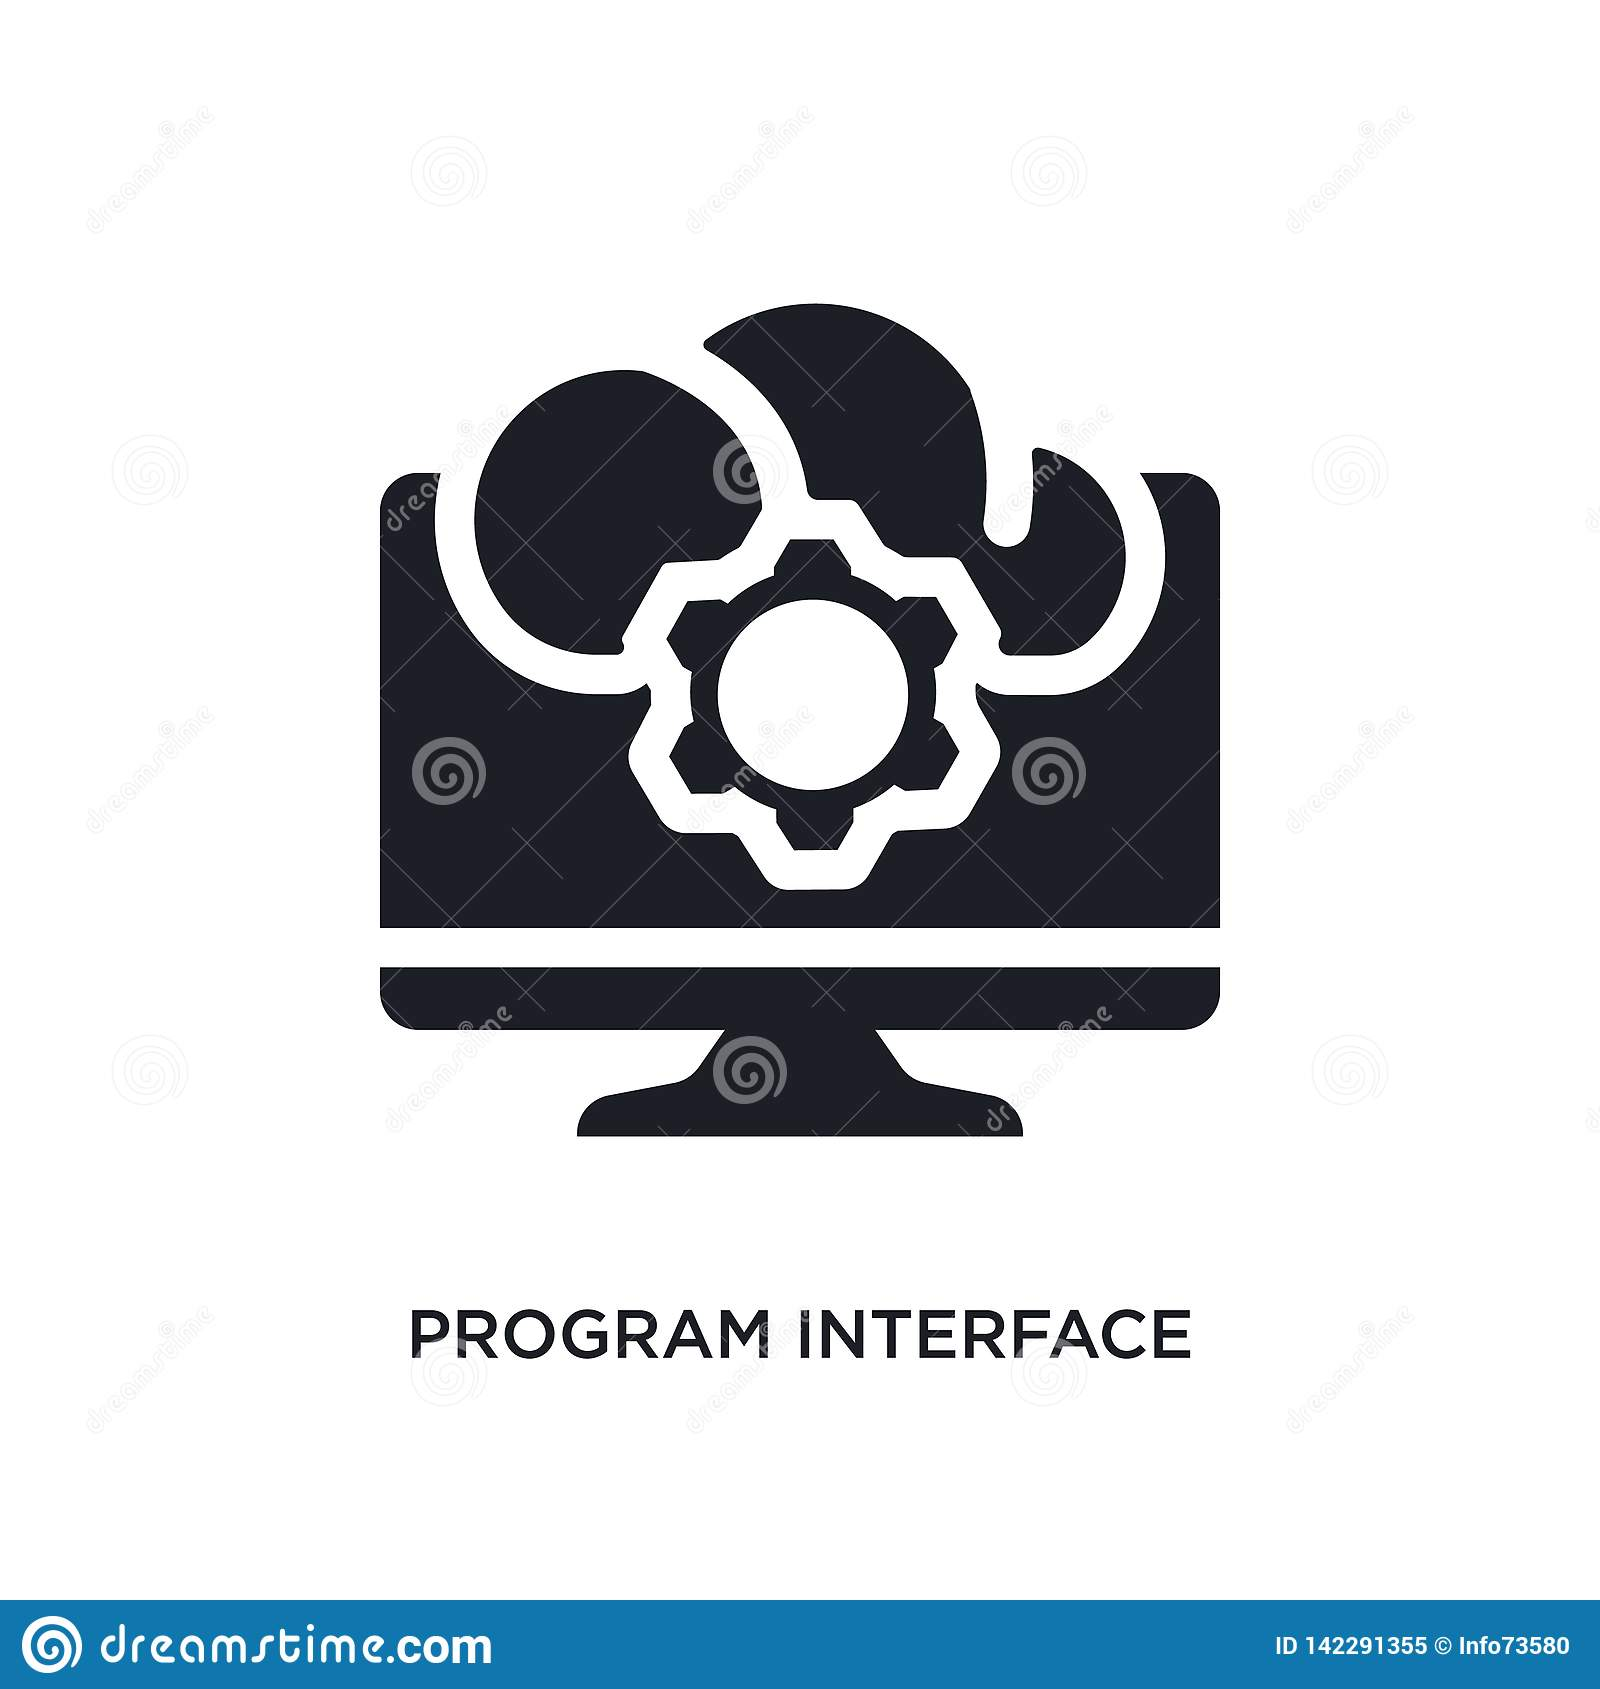 program interface isolated icon. simple element illustration from programming concept icons. program interface editable logo sign